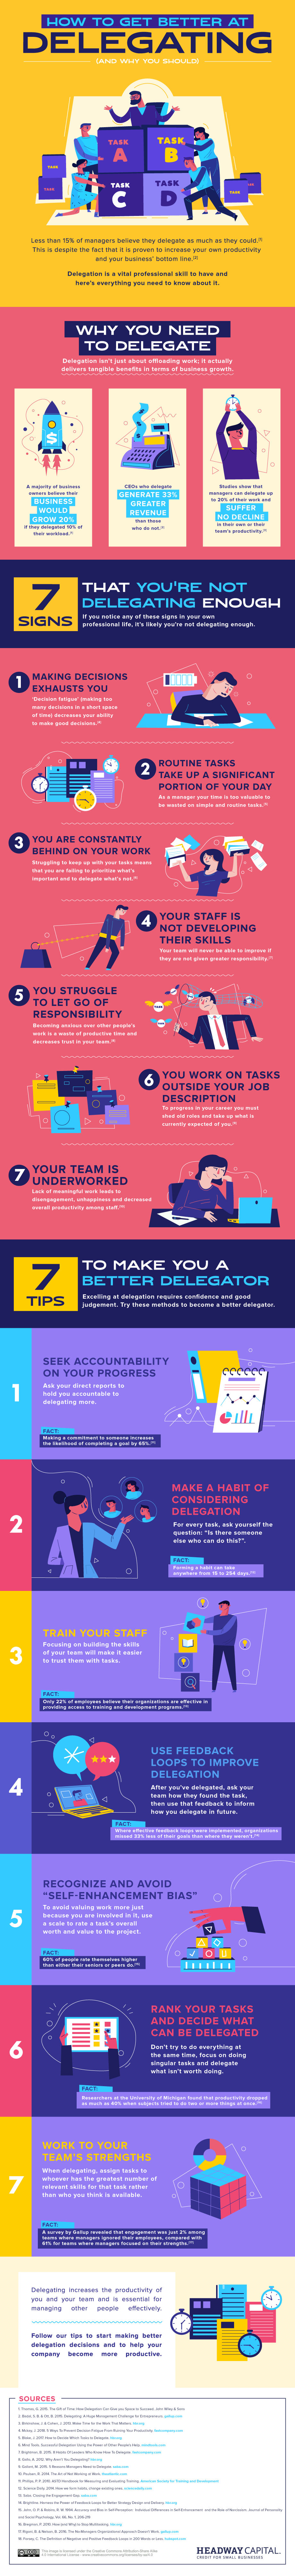 How-to-get-better-at-delegating_infographic-2